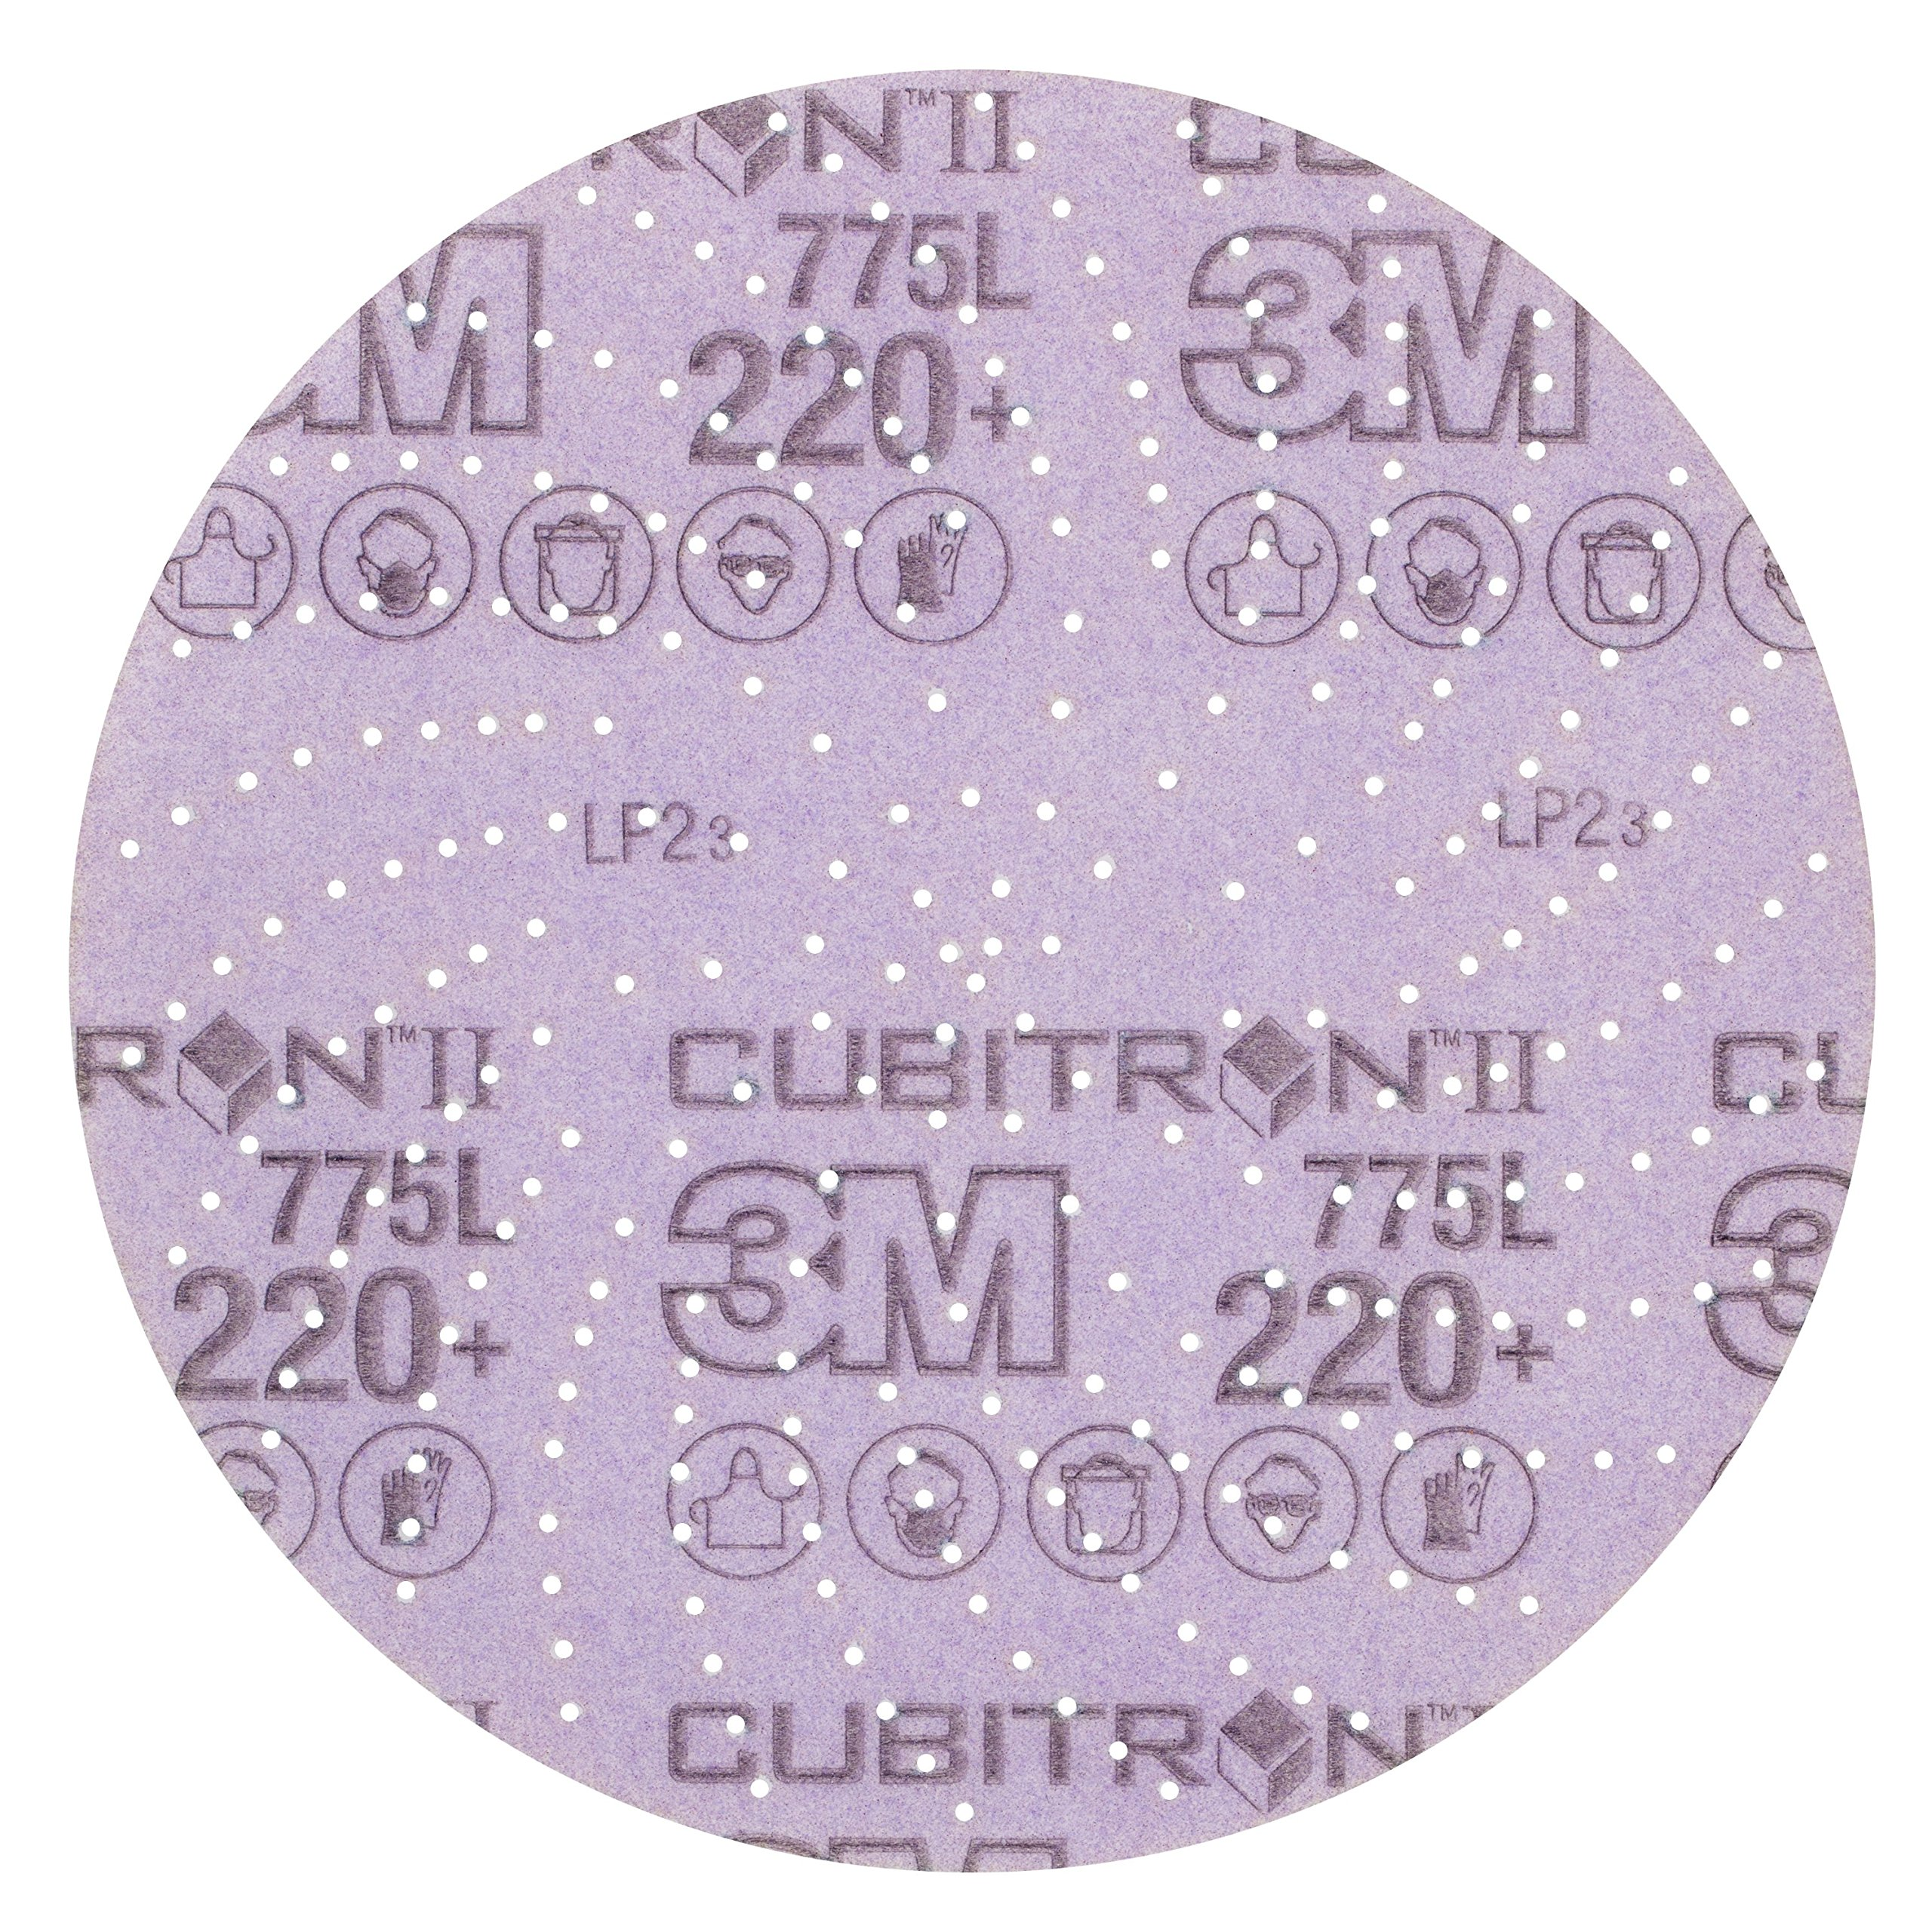 3M Cubitron II Hookit 64270 Clean Sanding Film Disc 775L, 5 in 220+ Film 3 MIL, Film Backing, Aluminum Oxide, 220+ Grit, 5'' (Pack of 50)